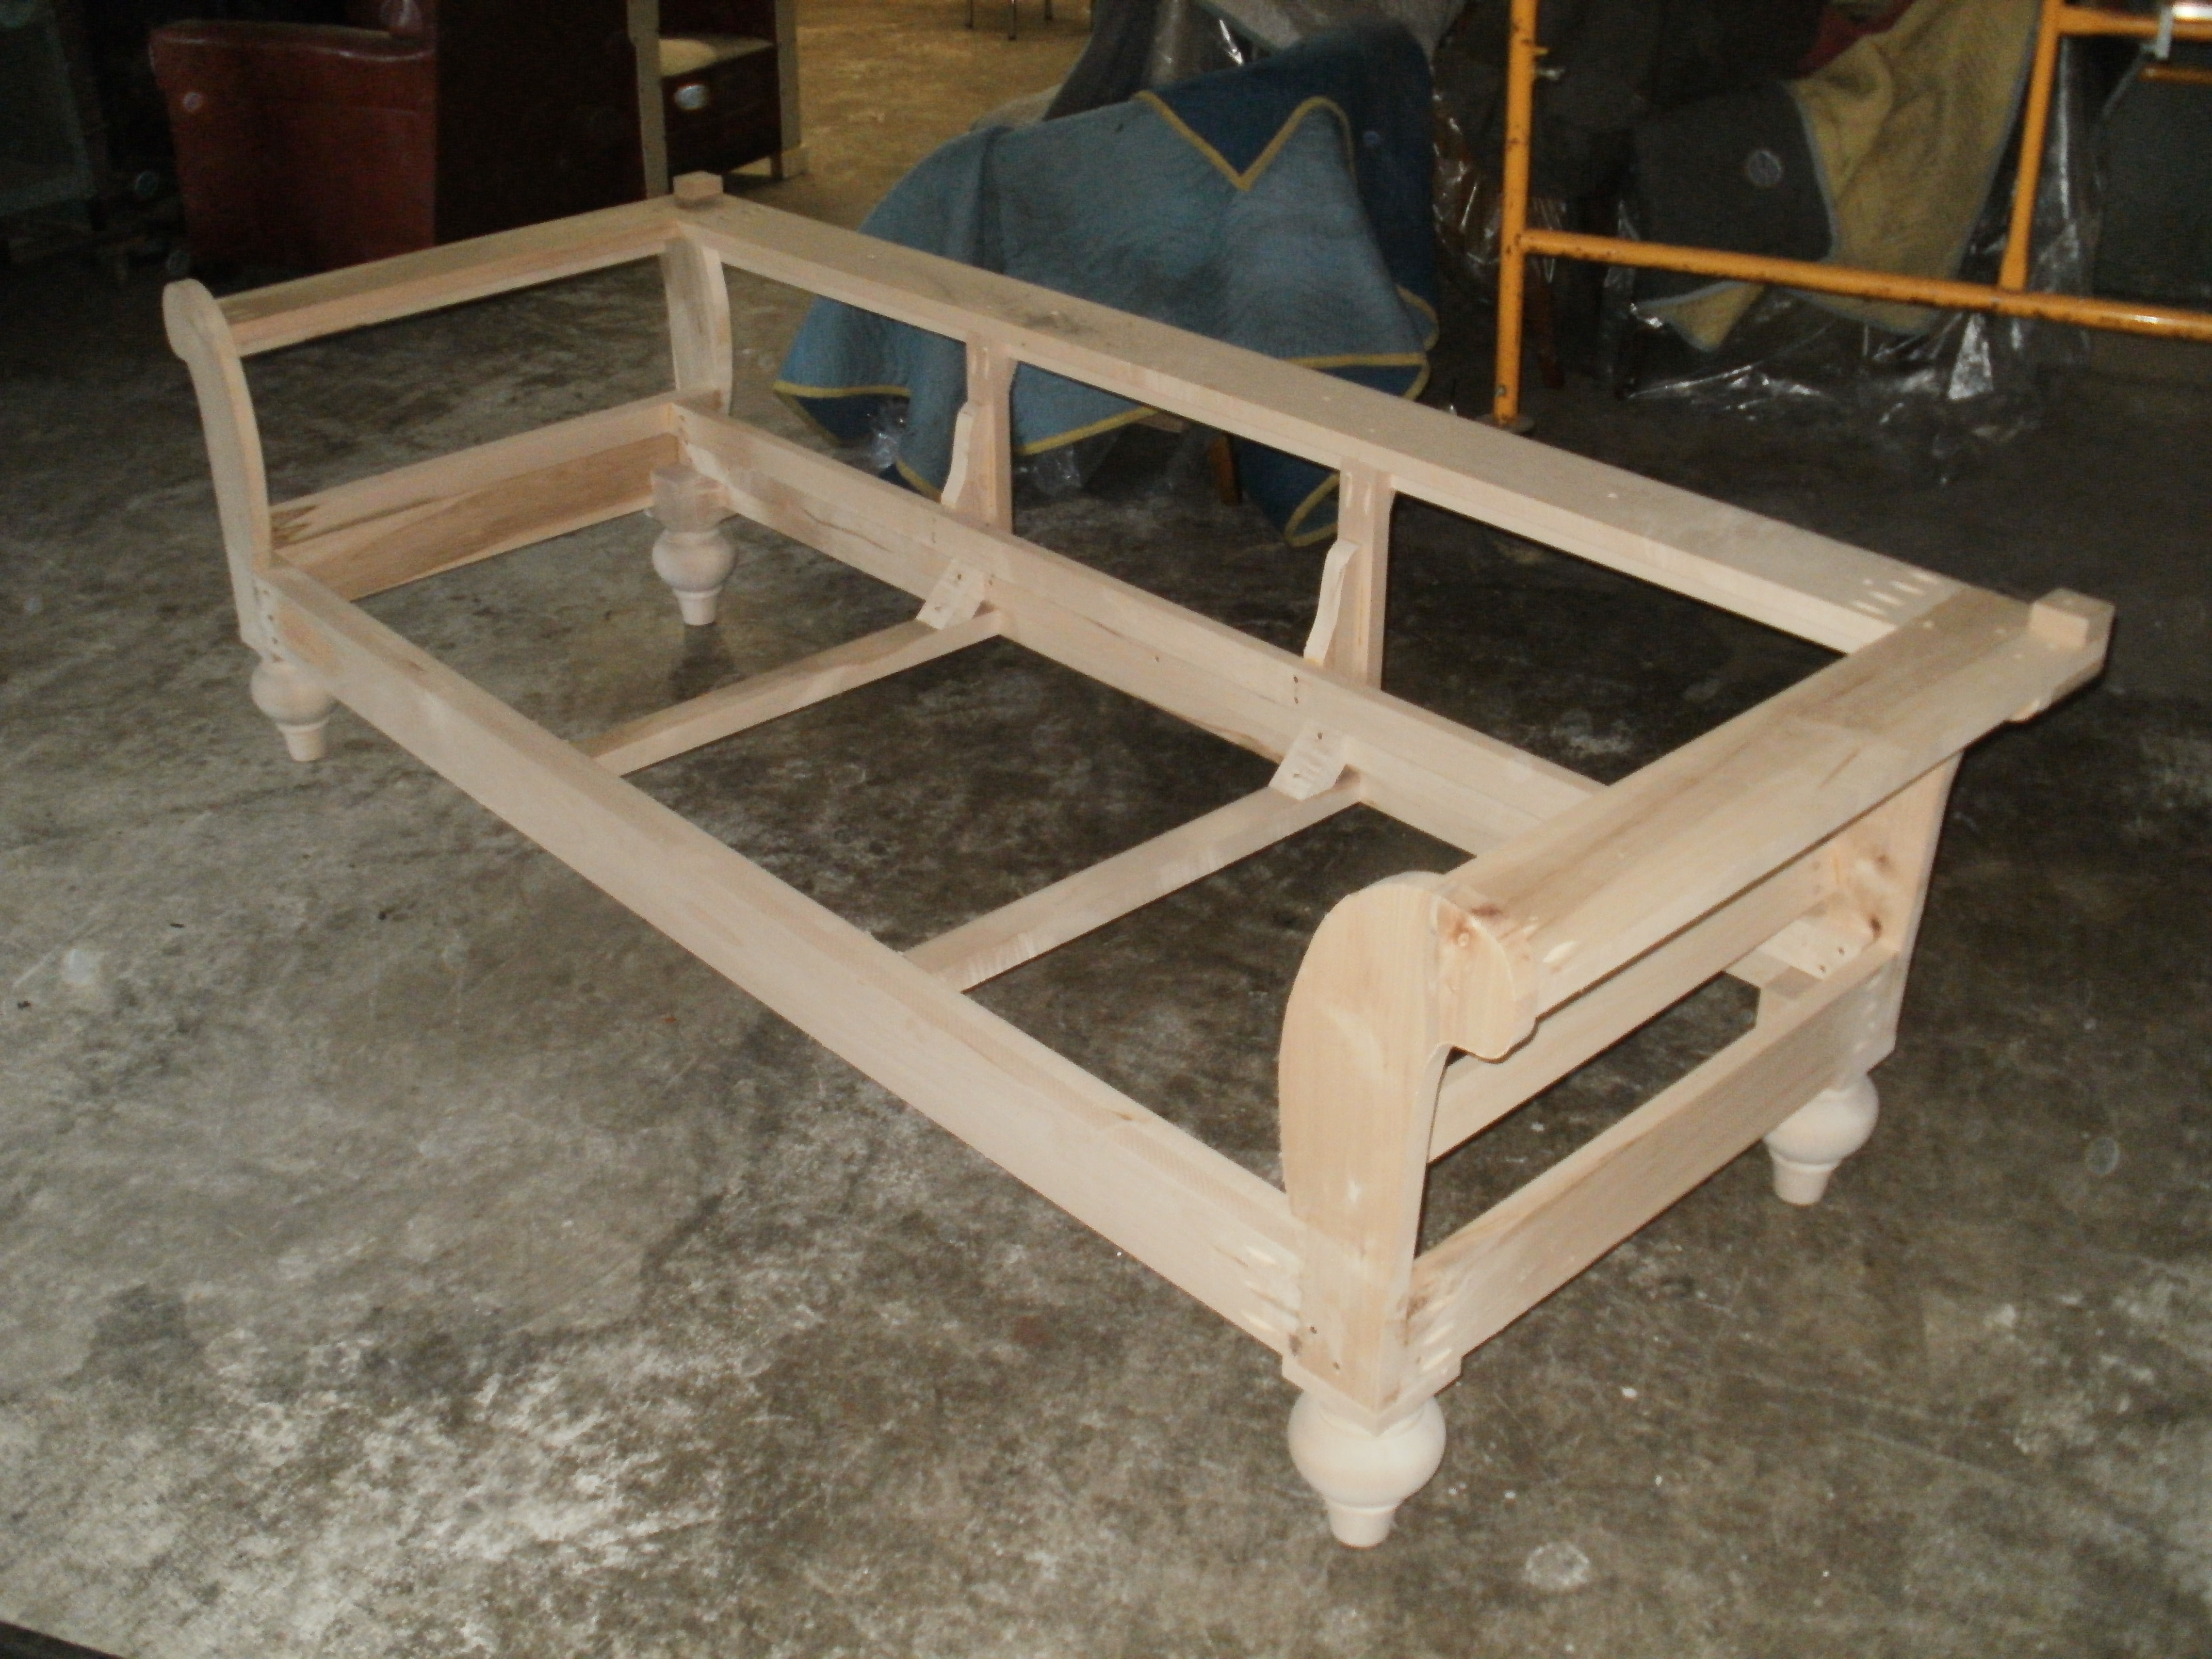 ... sofa project upholstery links sofa frame solid wood construction